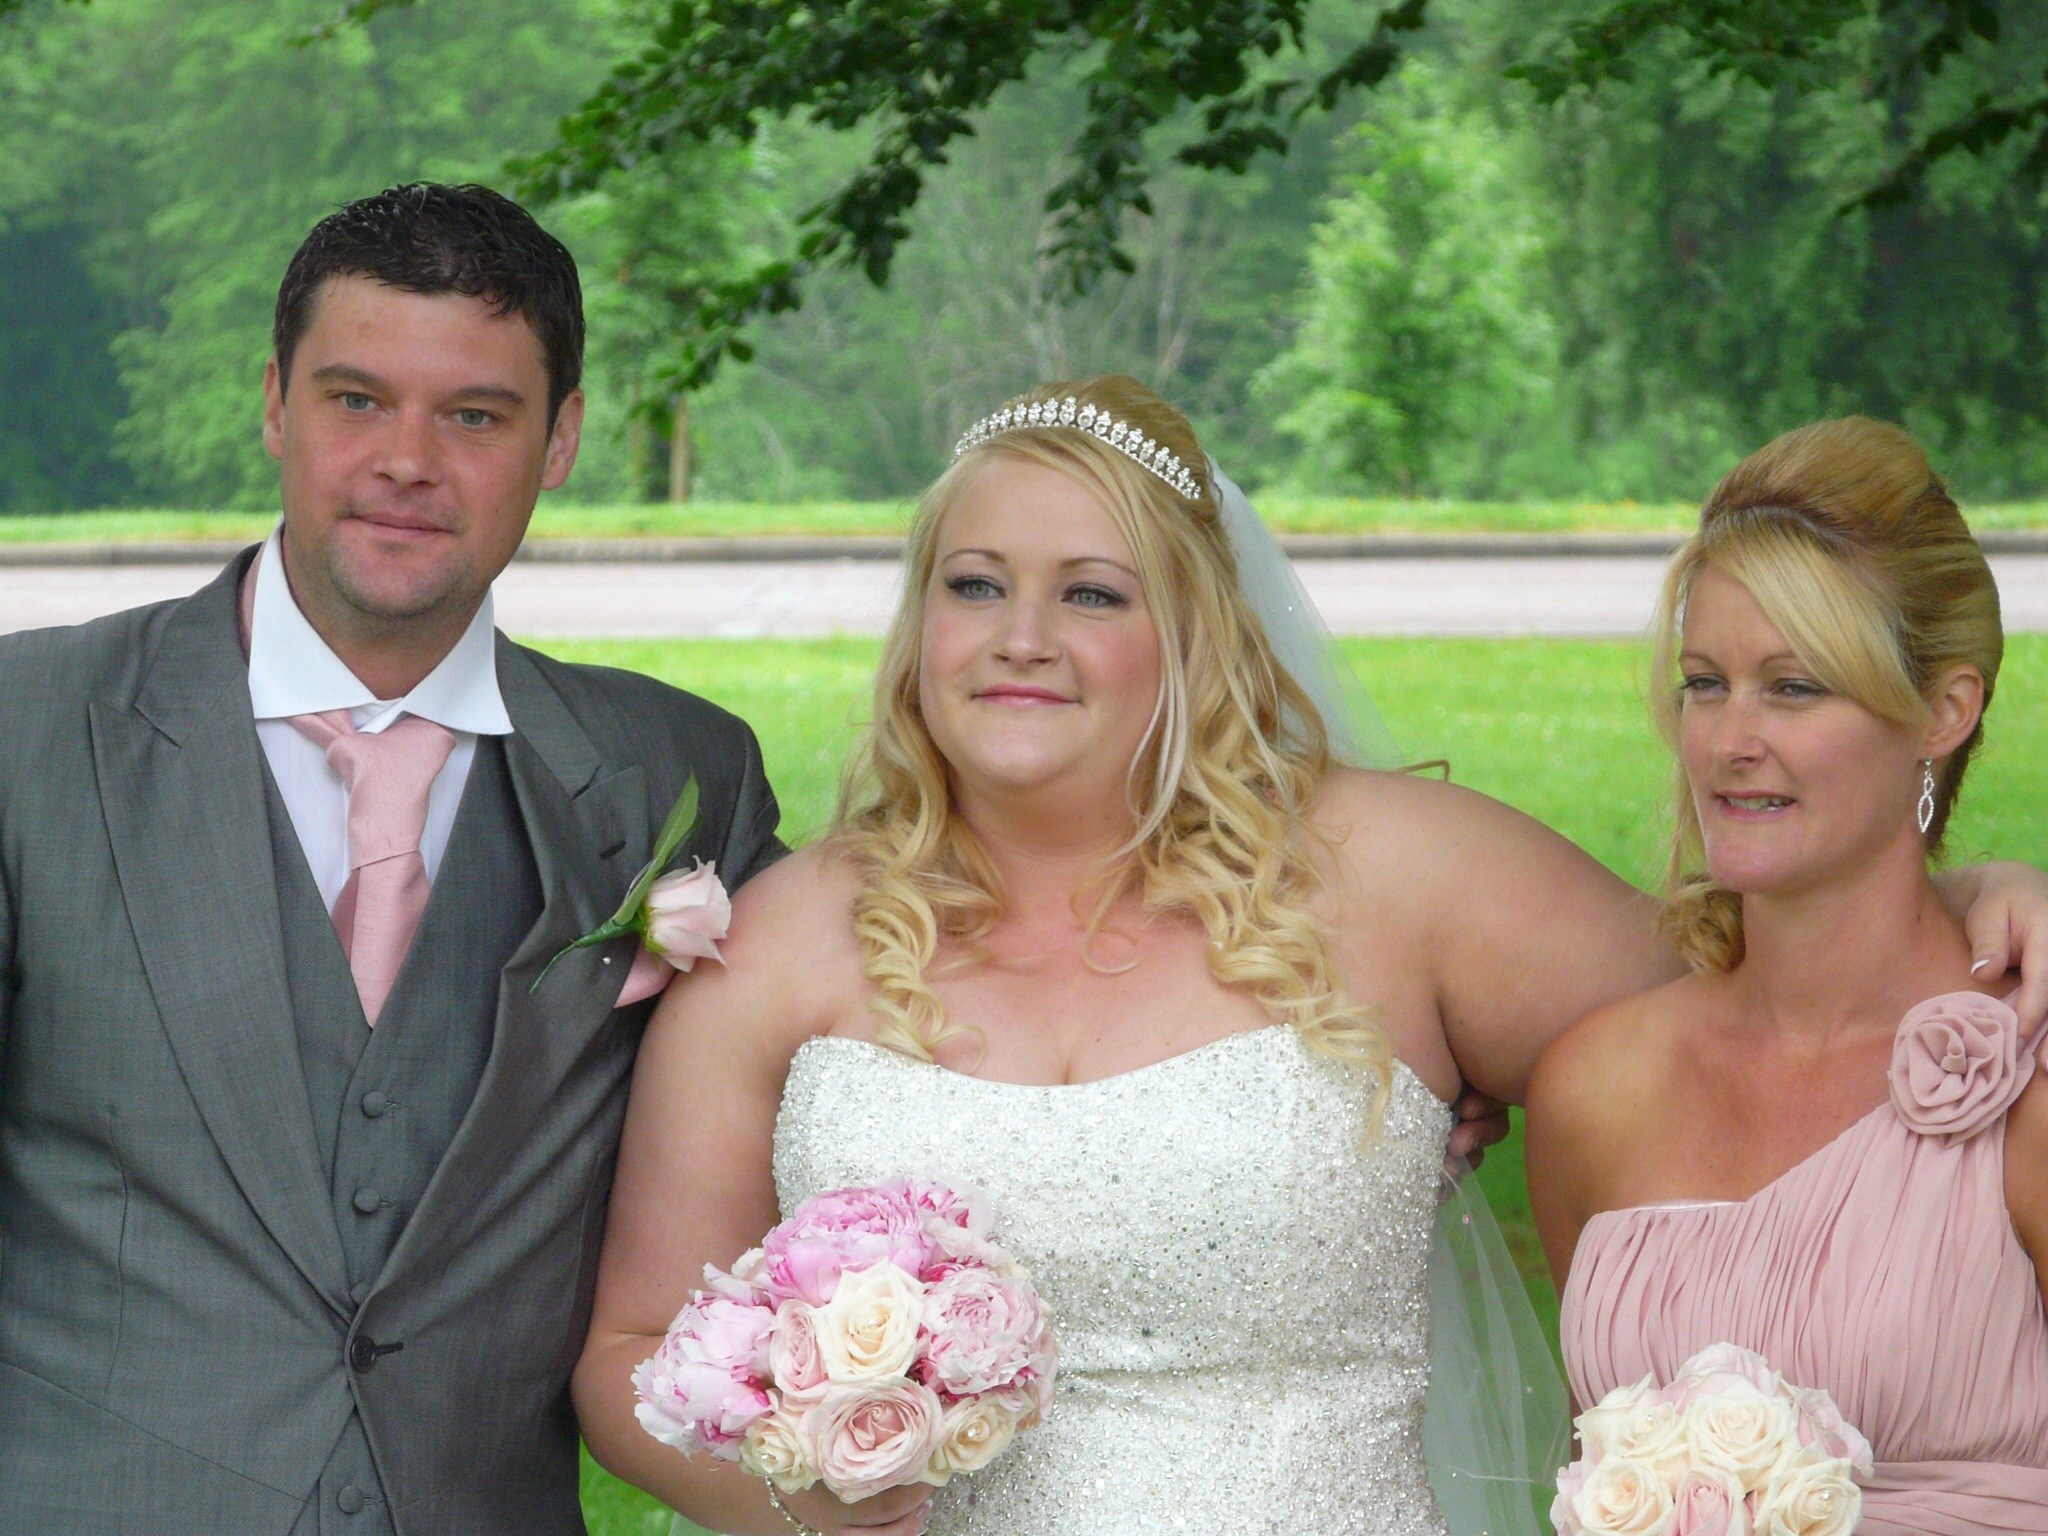 Our beautiful brother x x